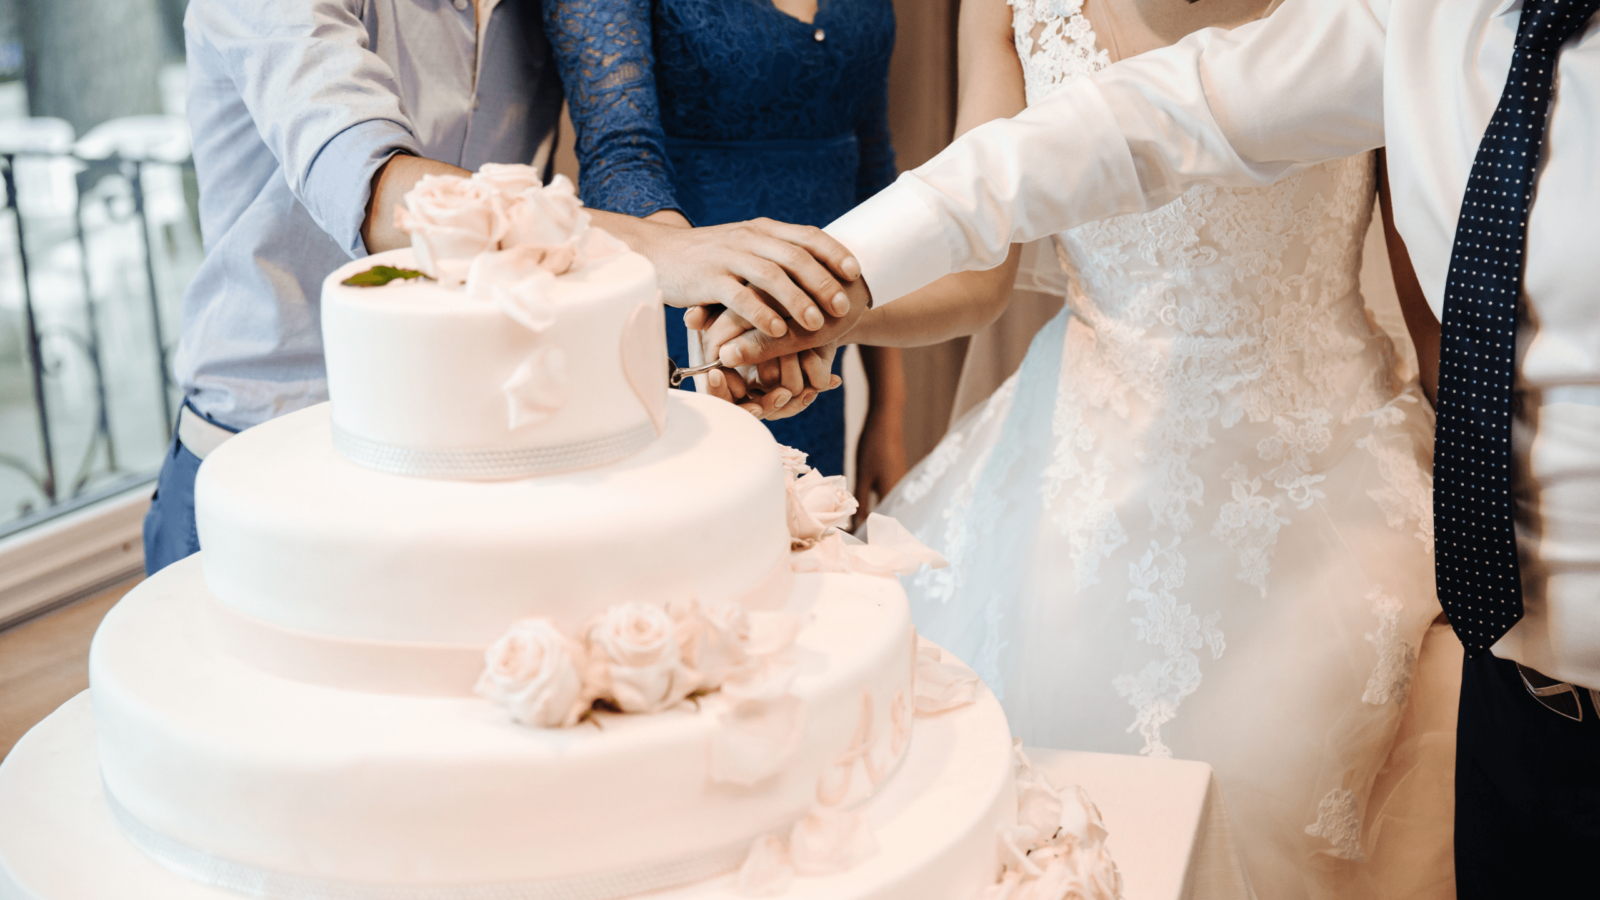 5 custom wedding cake bakers to book for your big day